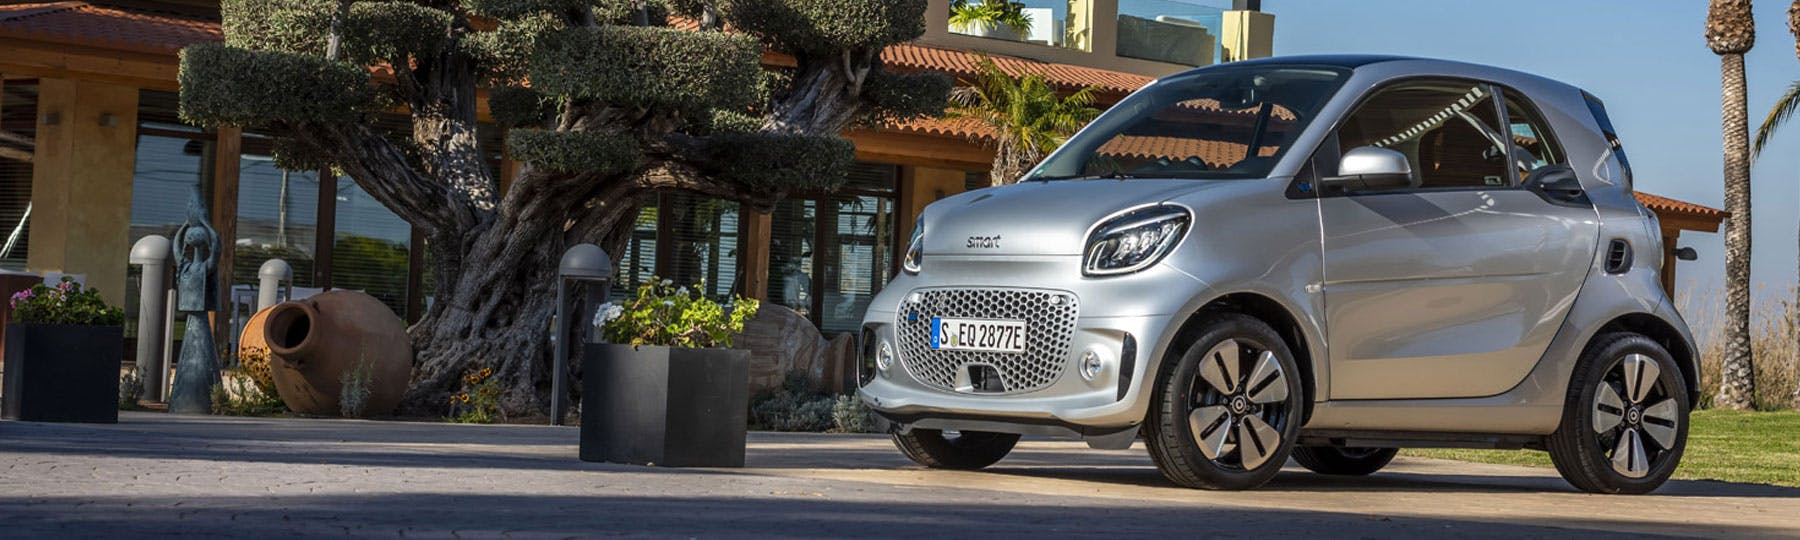 smart EQ fortwo Coupe Motability